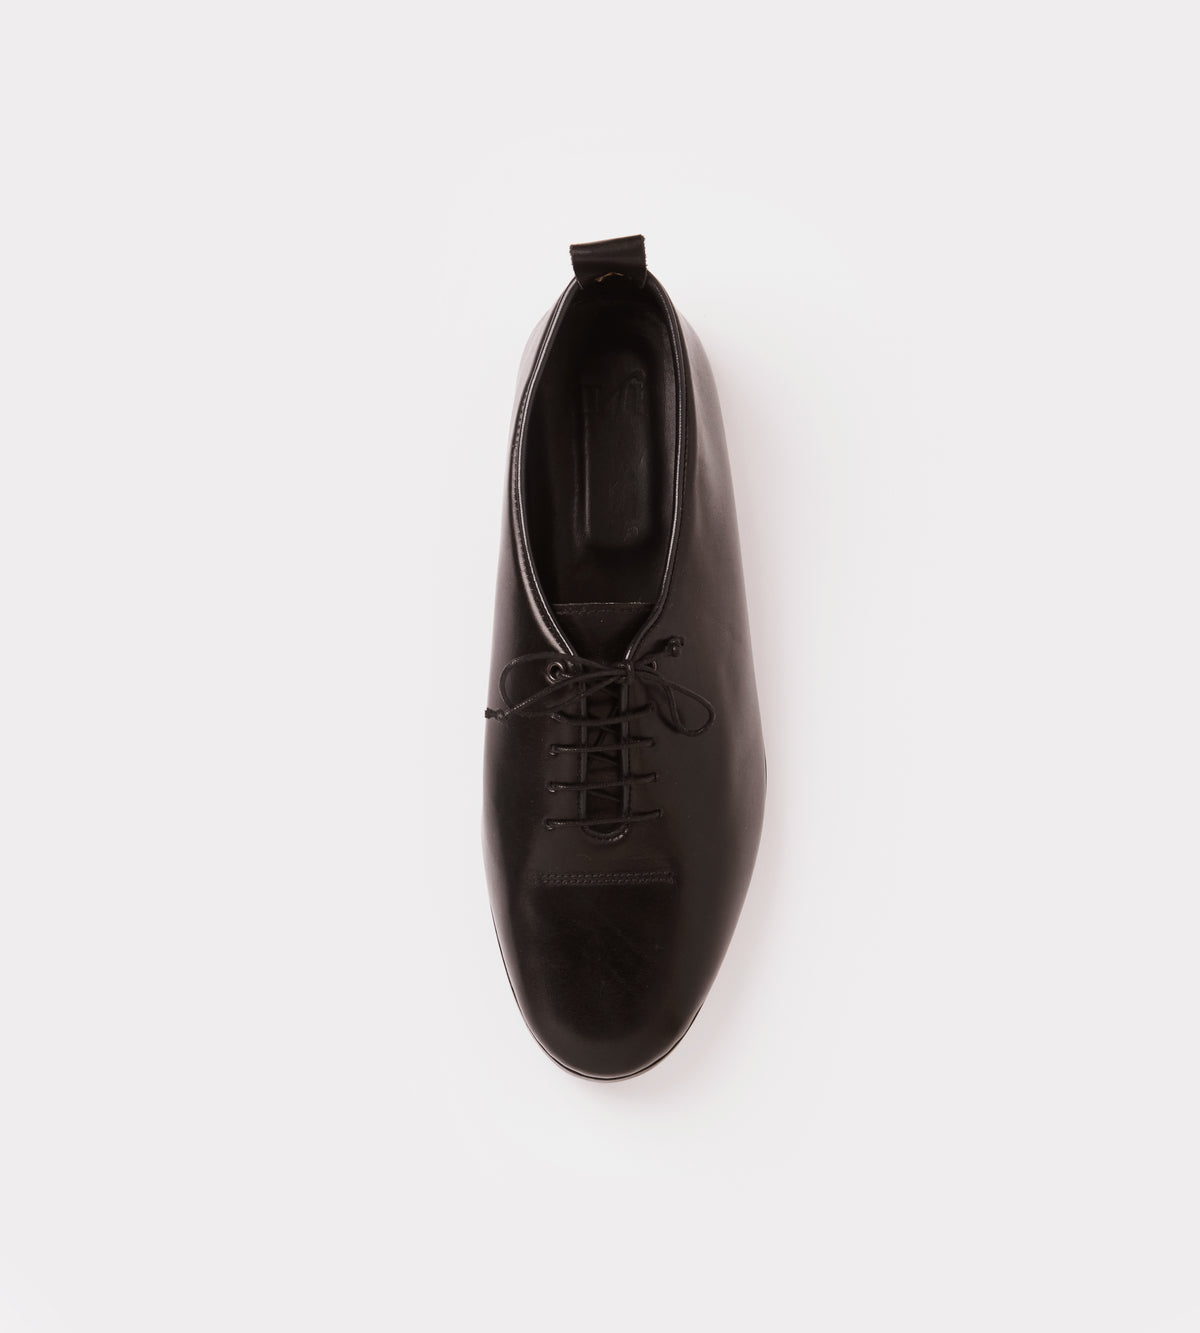 Black calf leather wholecut soft shoe top view